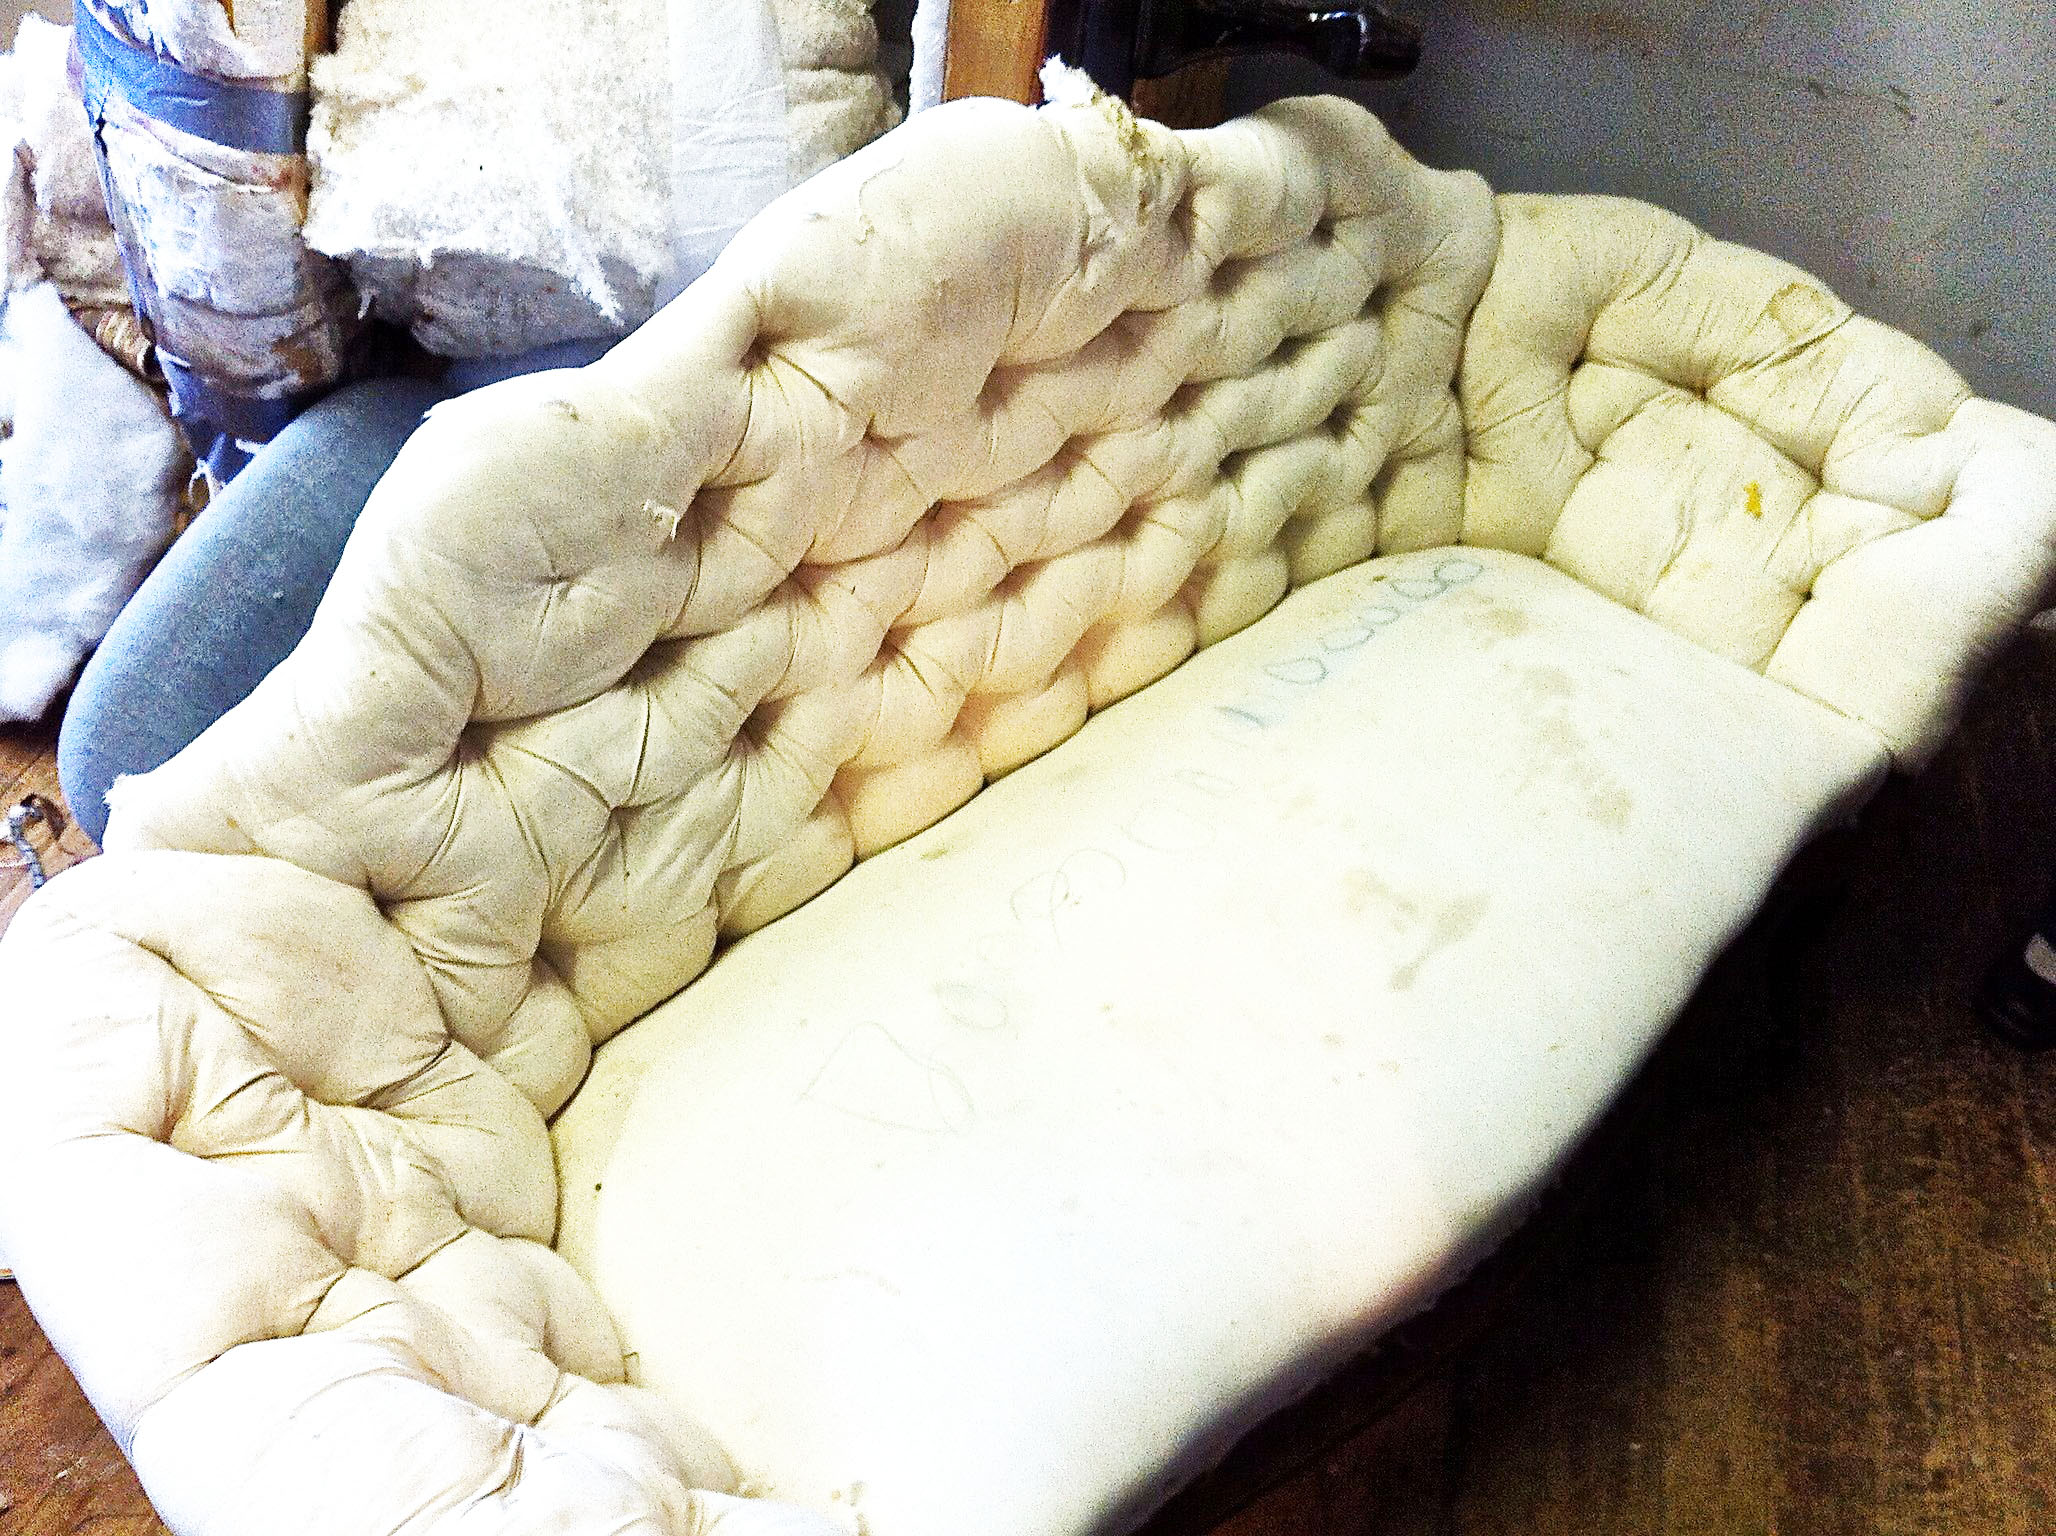 Our Couch Before Tony's Artistry